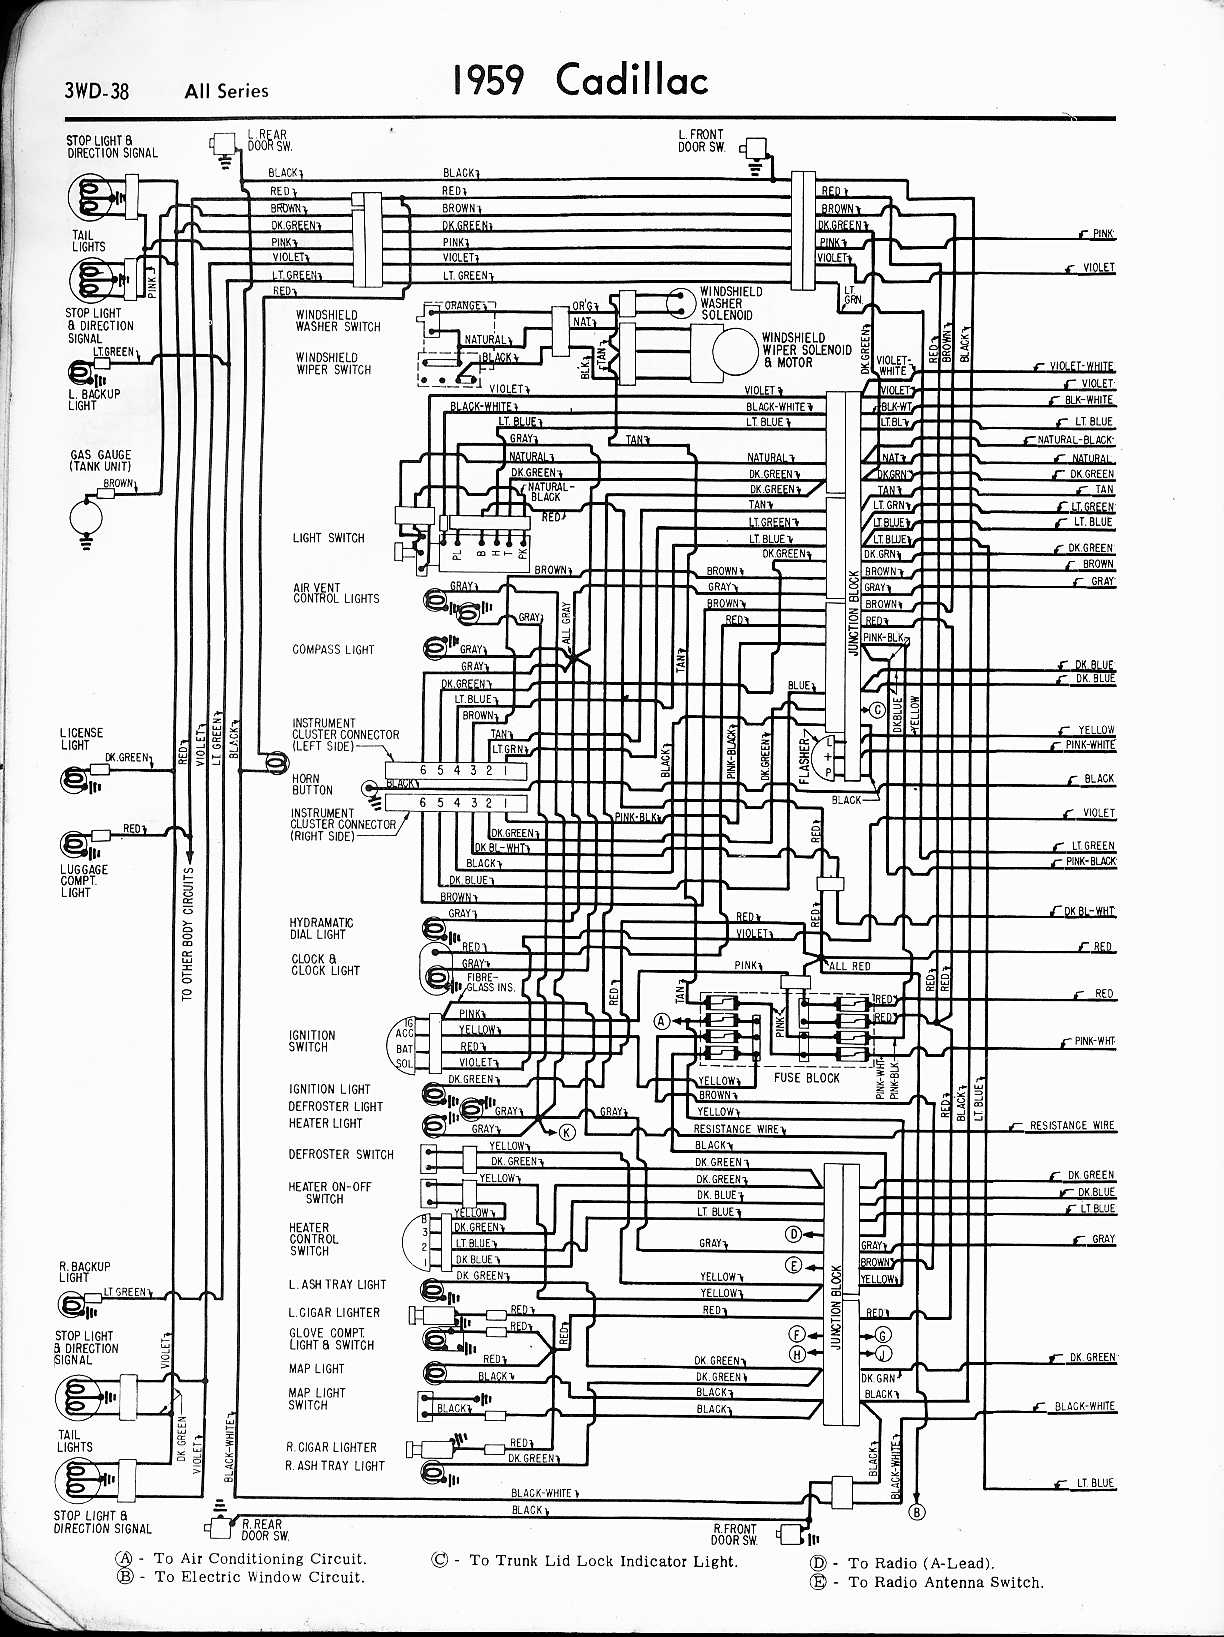 1957 cadillac distributor wiring diagram catalogue of schemas 72 chevelle wiring diagram pdf wiring